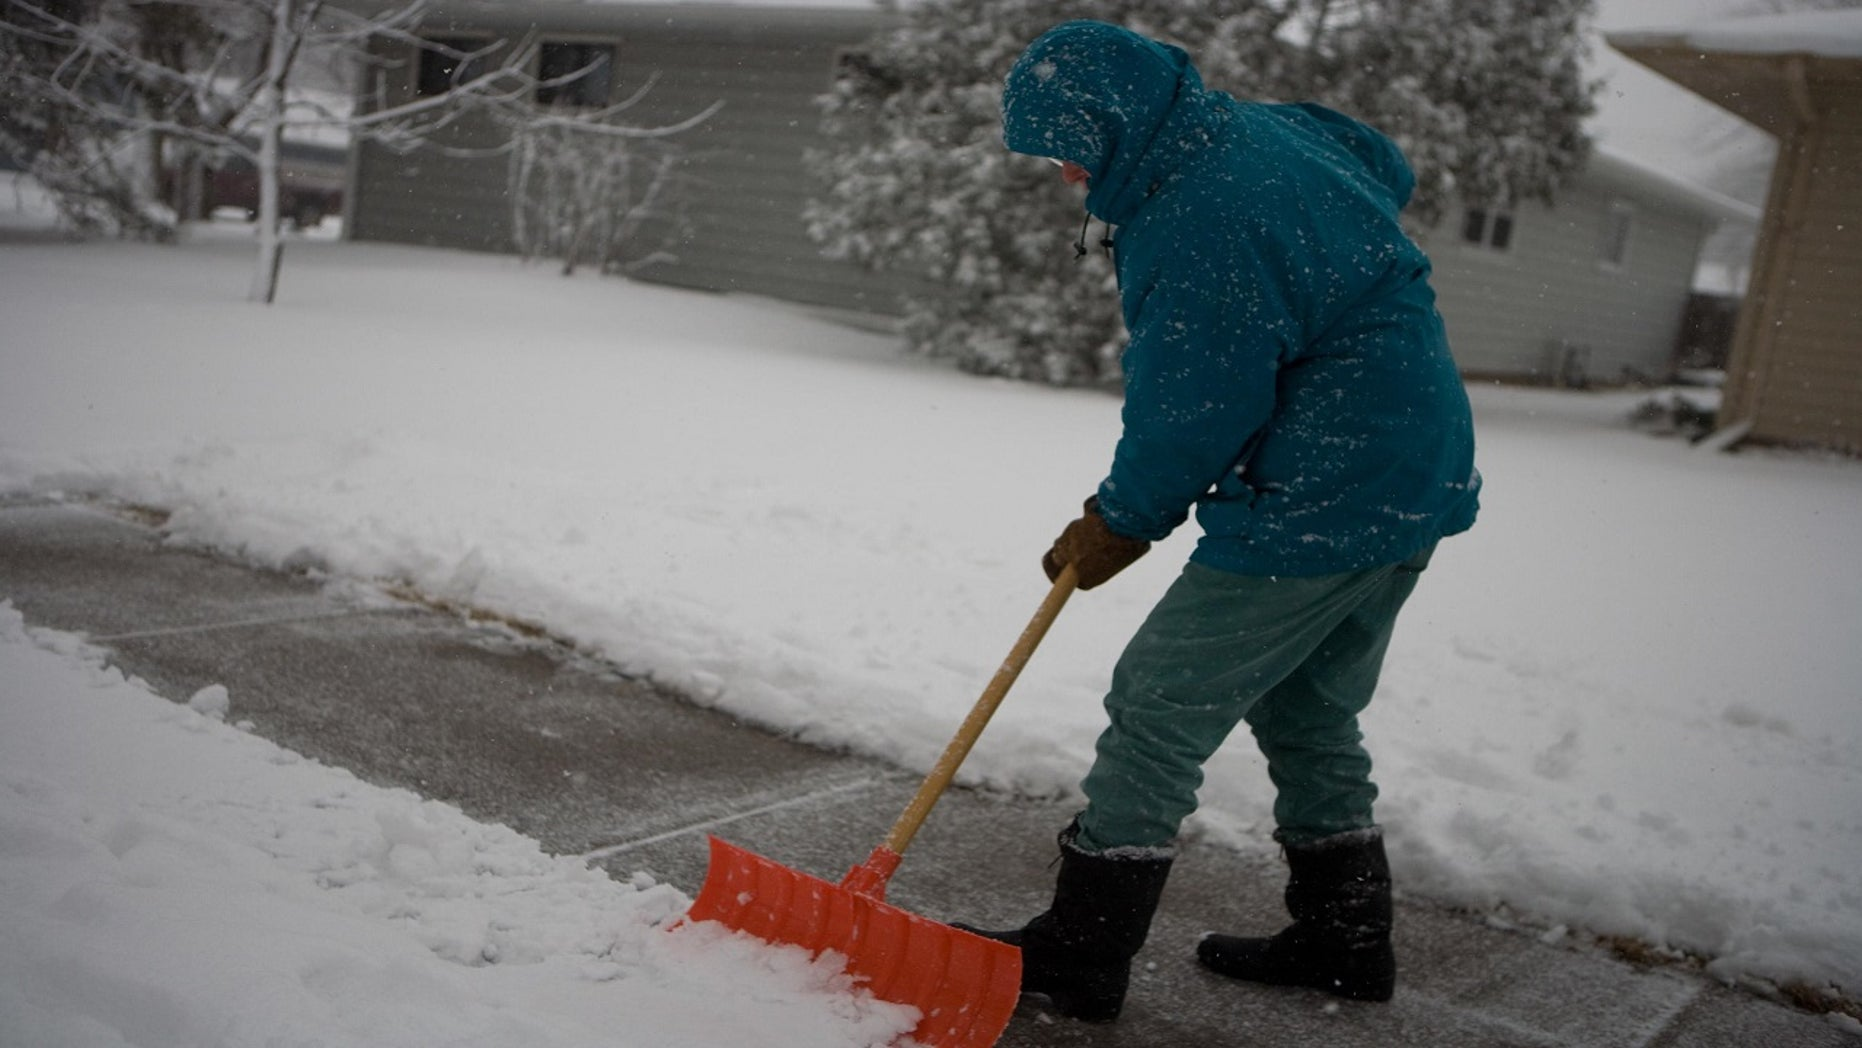 FILE: A resident digs out snow on the sidewalks in Fargo, North Dakota. A Minneapolis city official who supported a tougher approach on residents shoveling sidewalks was issued a fine herself.